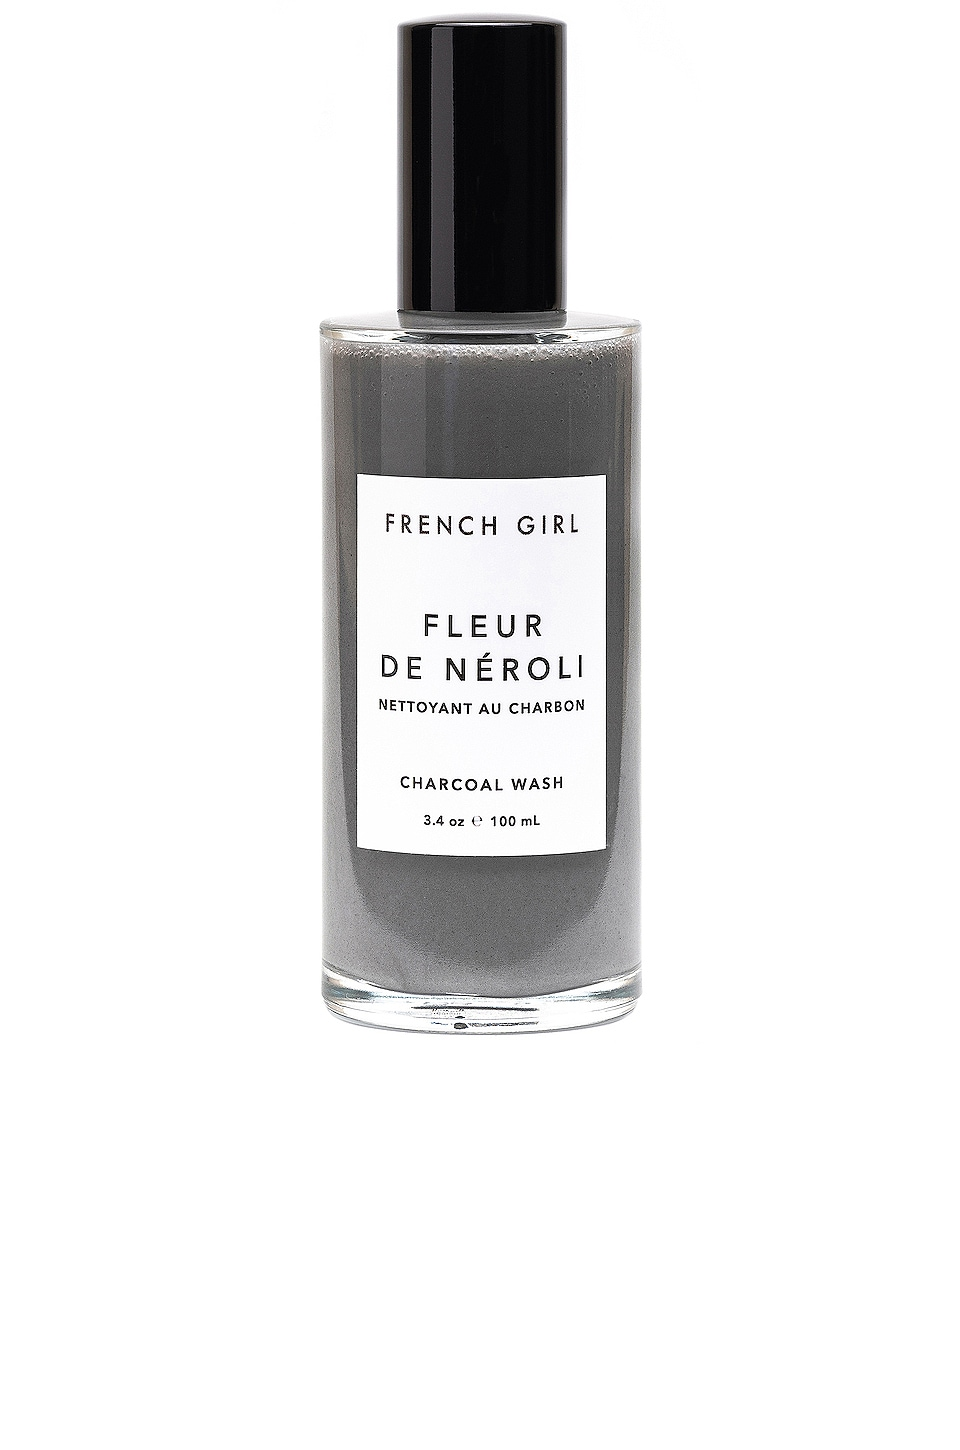 French Girl Fleur De Neroli Charcoal Wash